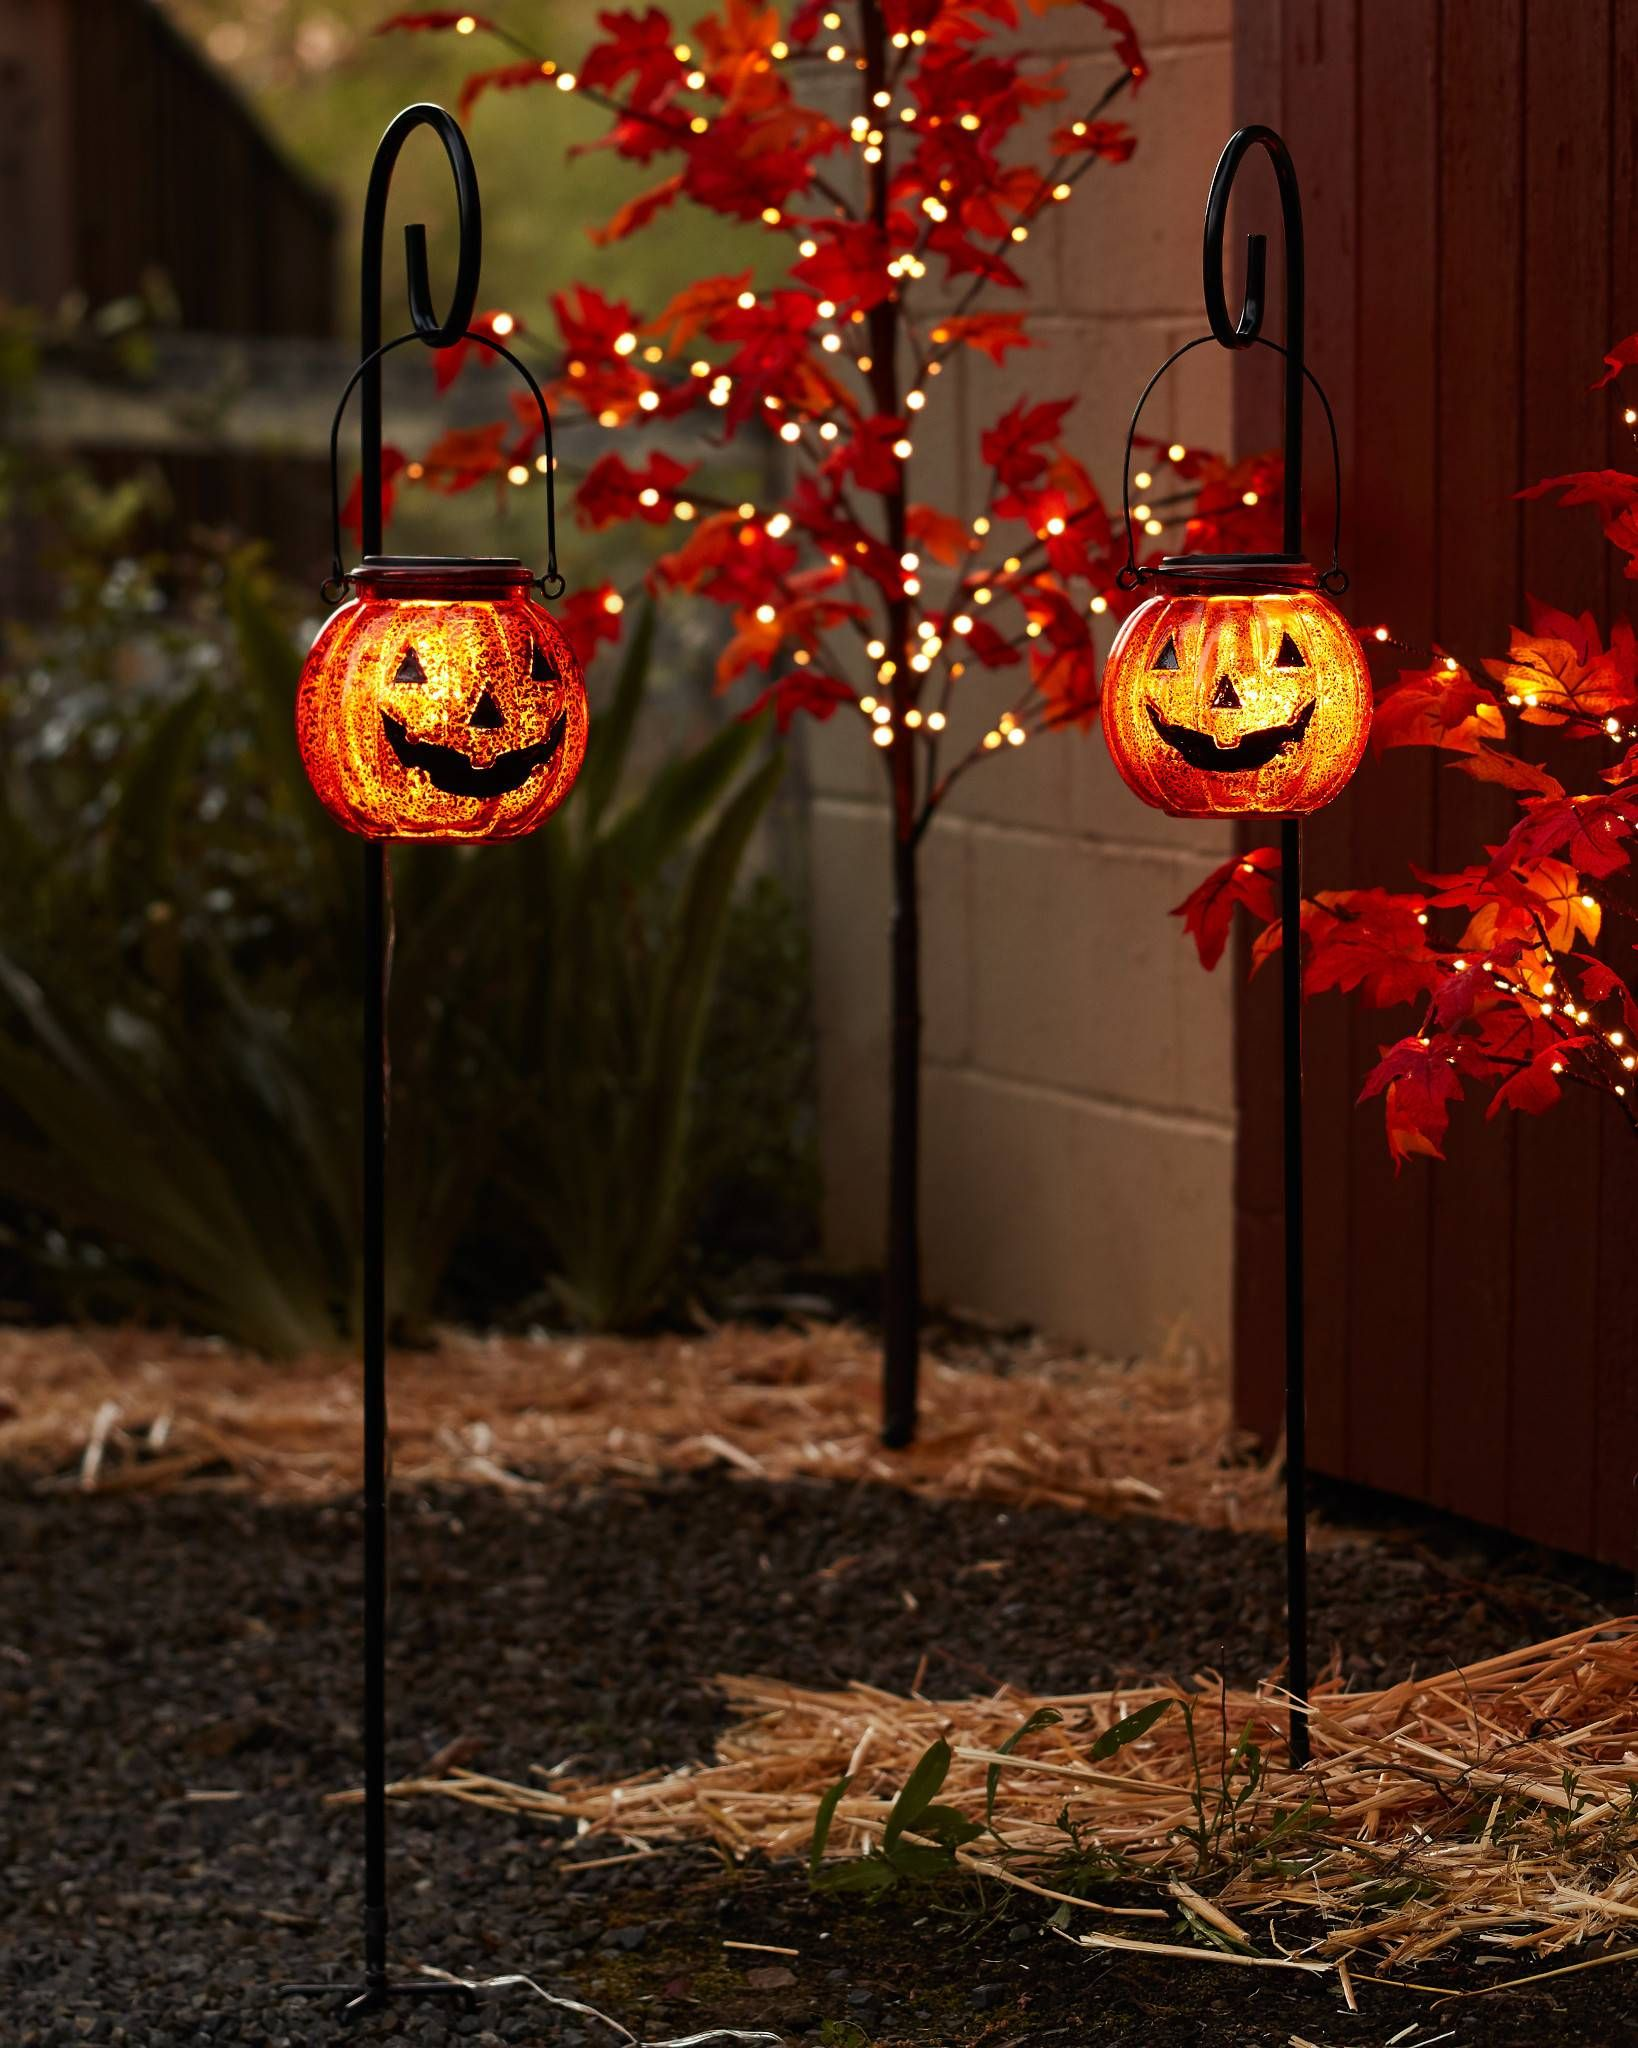 Solar Christmas Pathway Lights.Solar Powered Halloween Pathway Lights Halloween Fall In